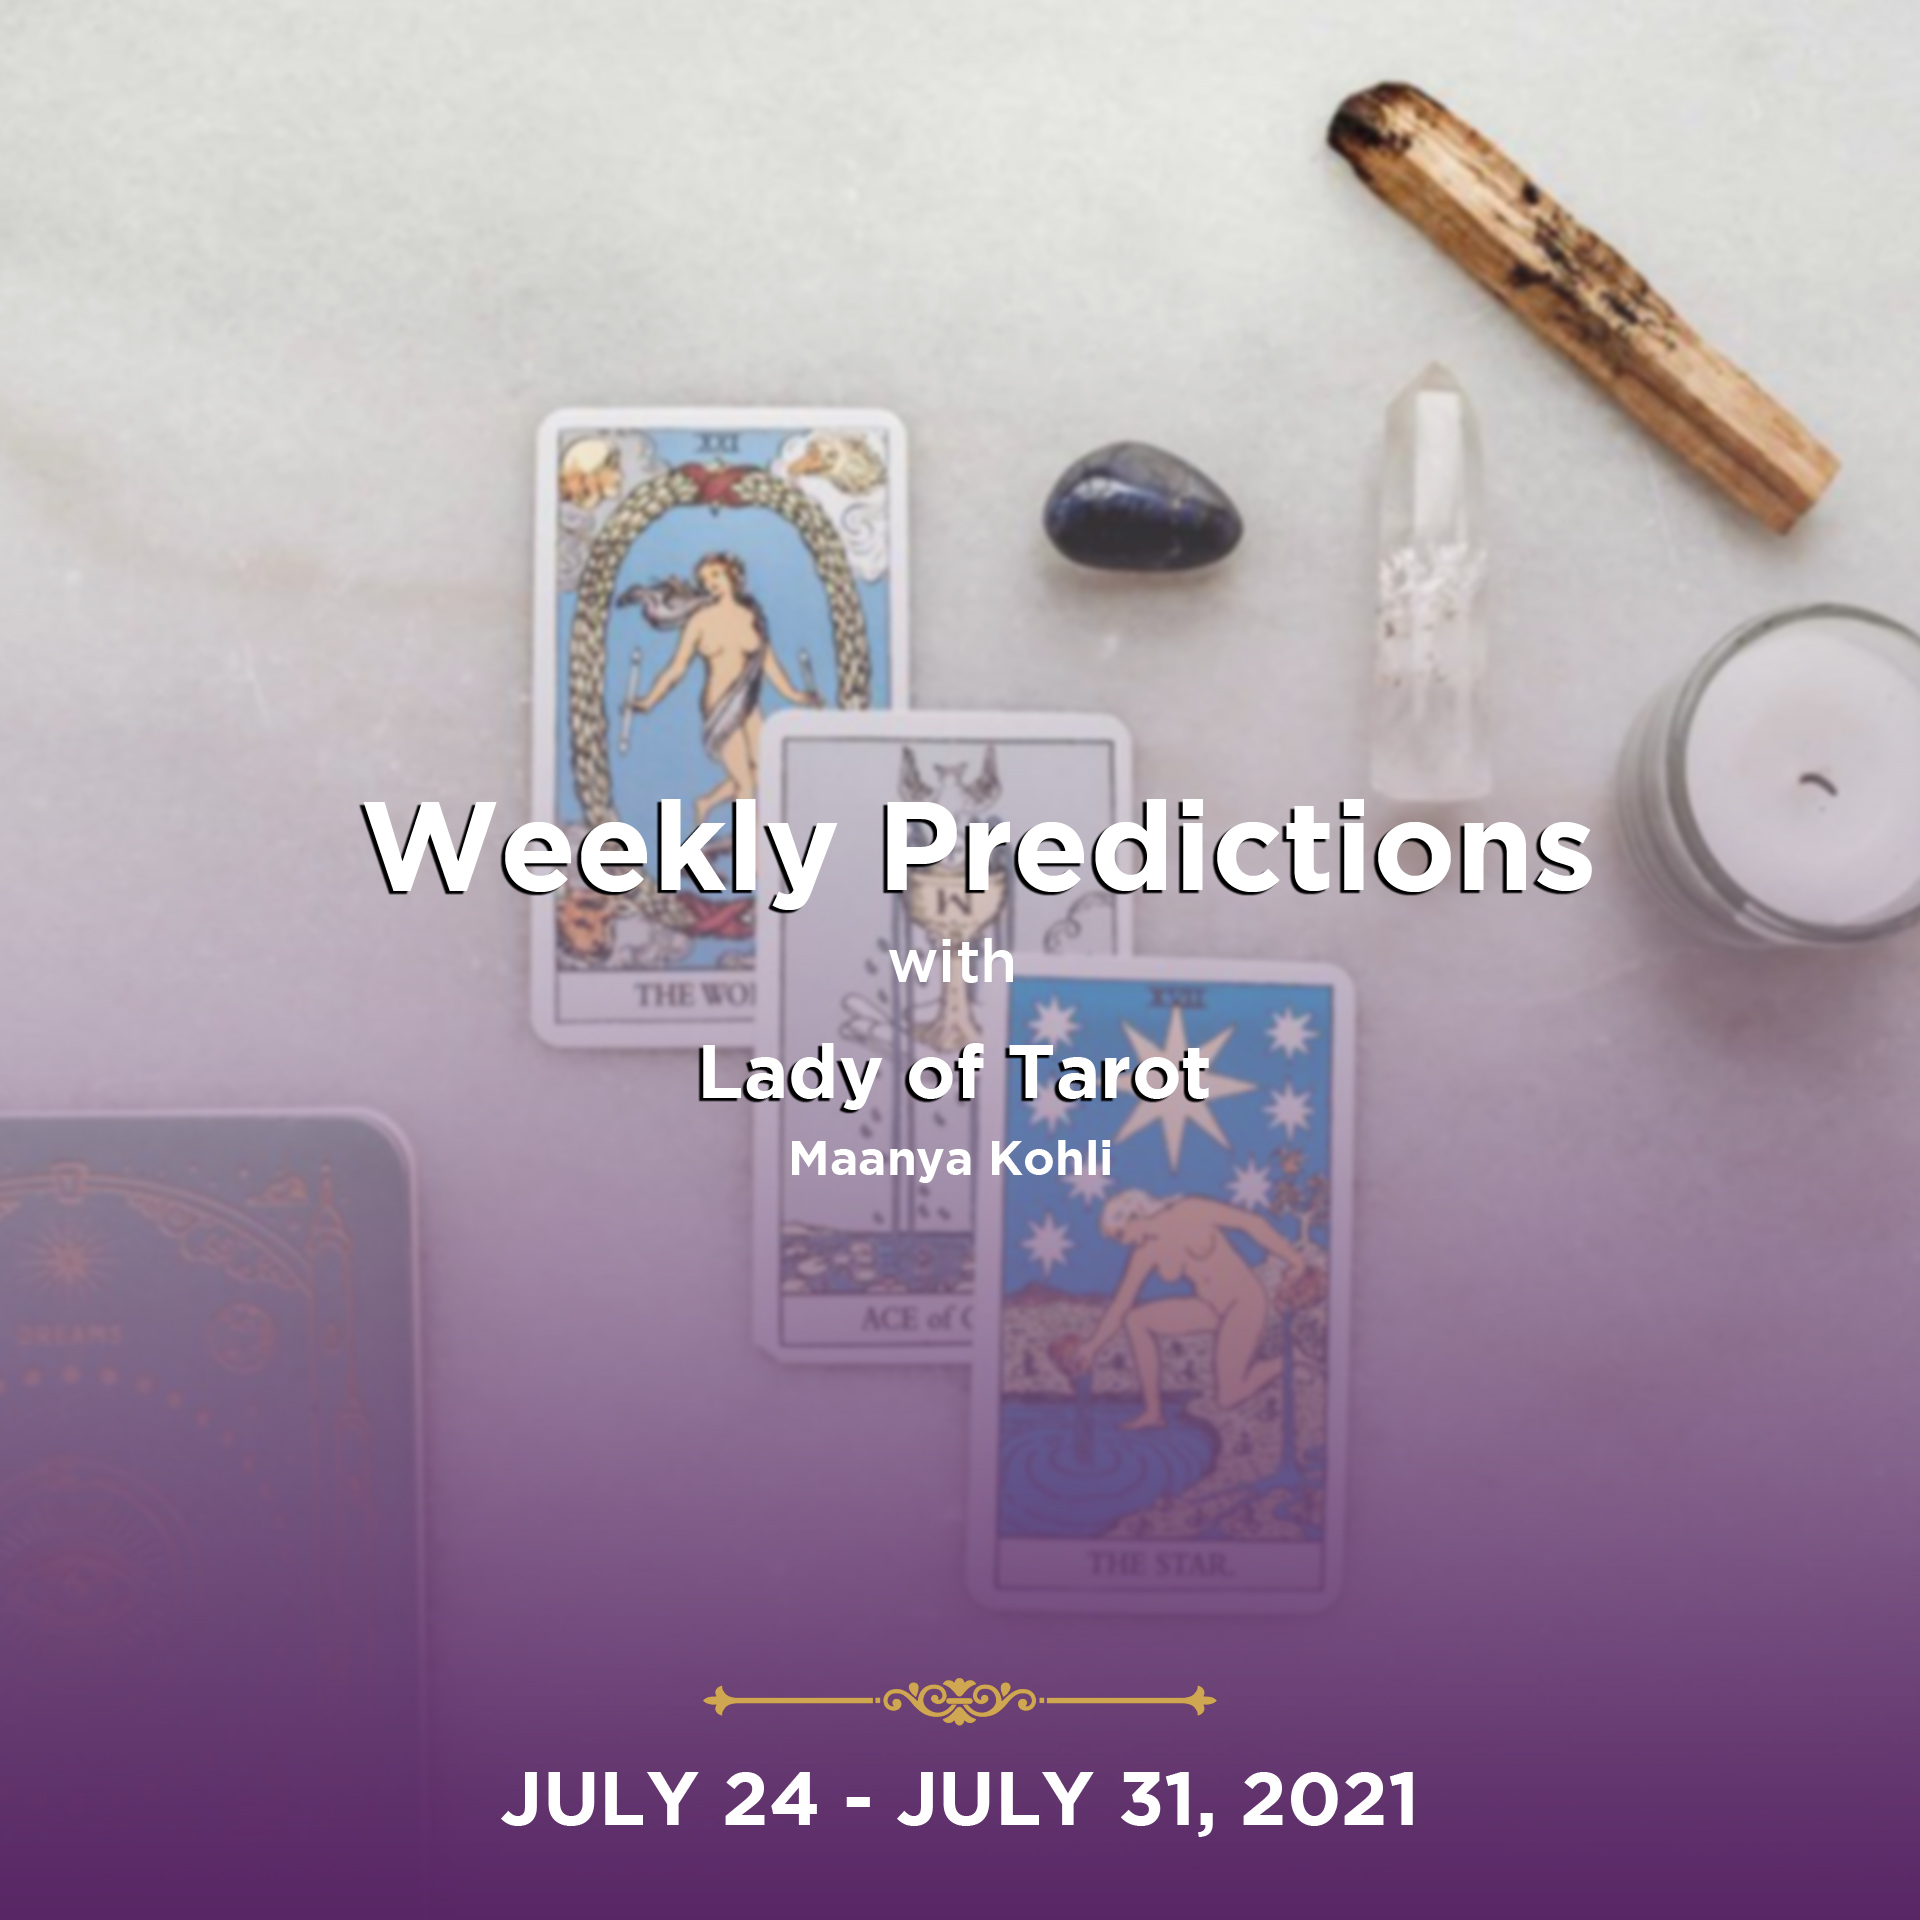 Weekly Predictions for 24th July to 31st July, 2021